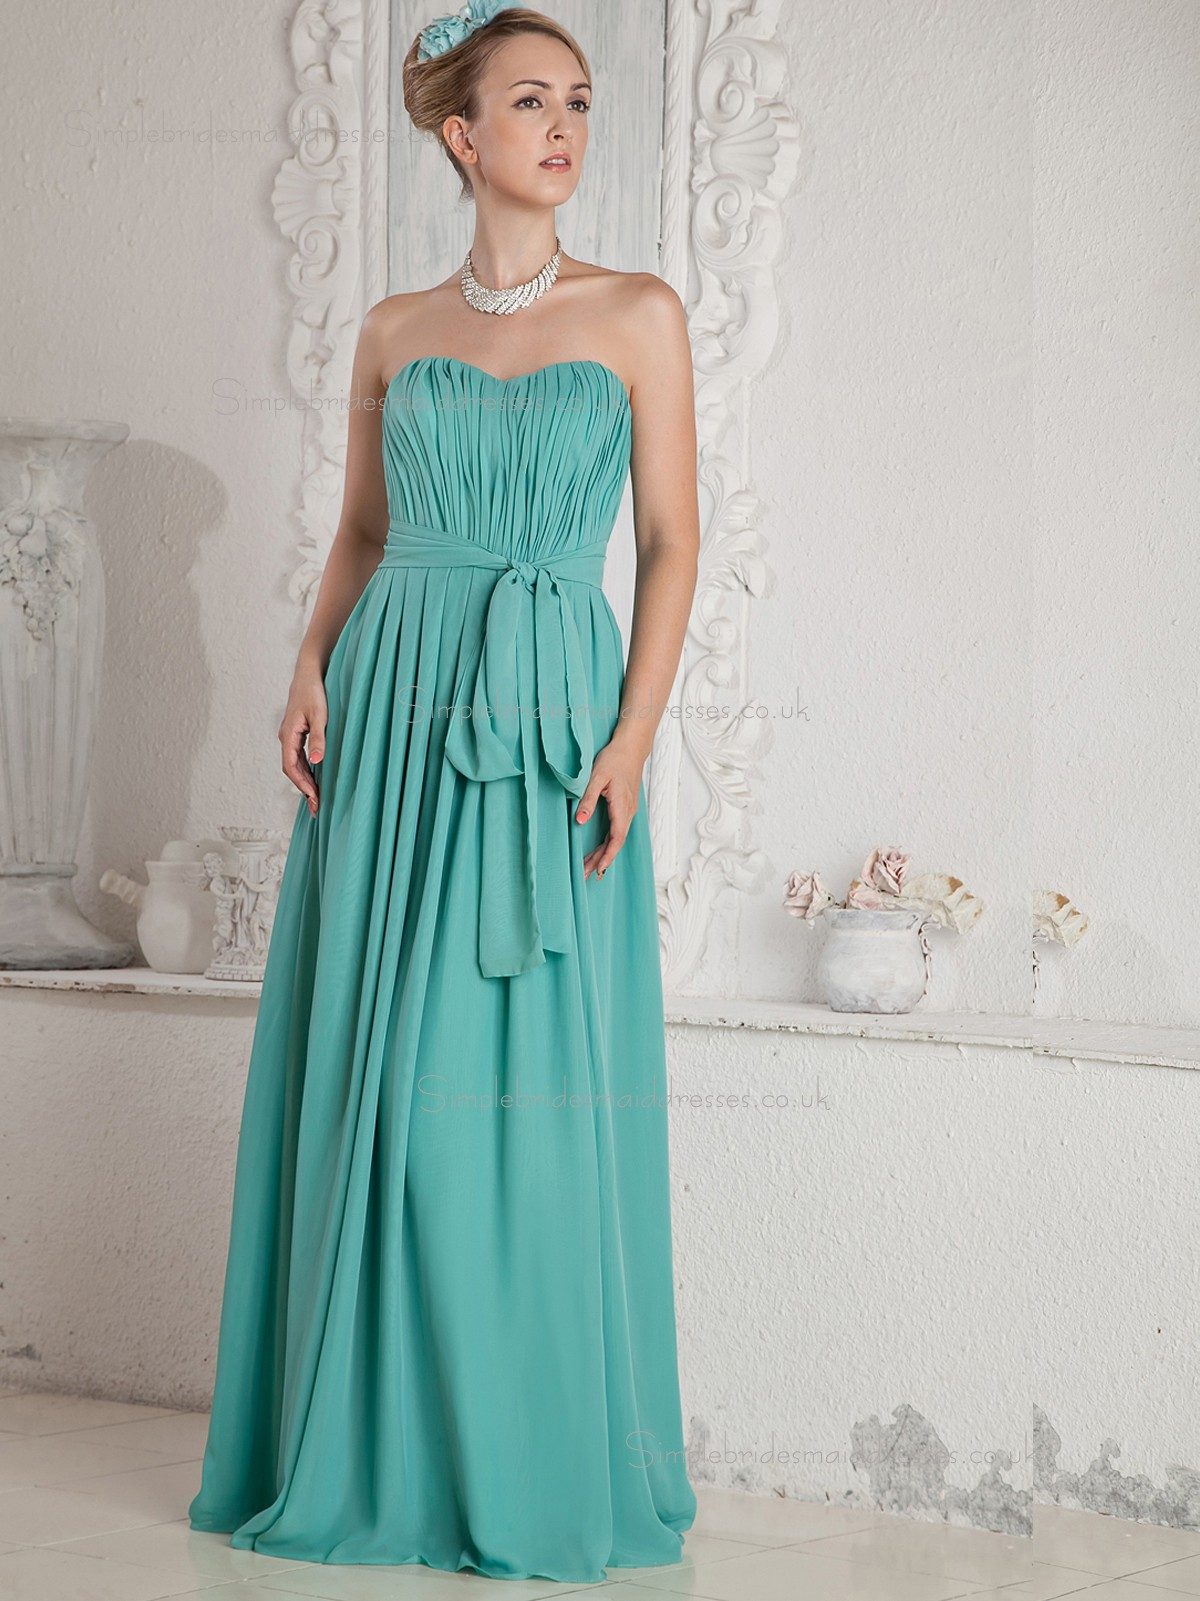 Buy uk jade sweetheart a line floor length empire chiffon for Jade green wedding dresses